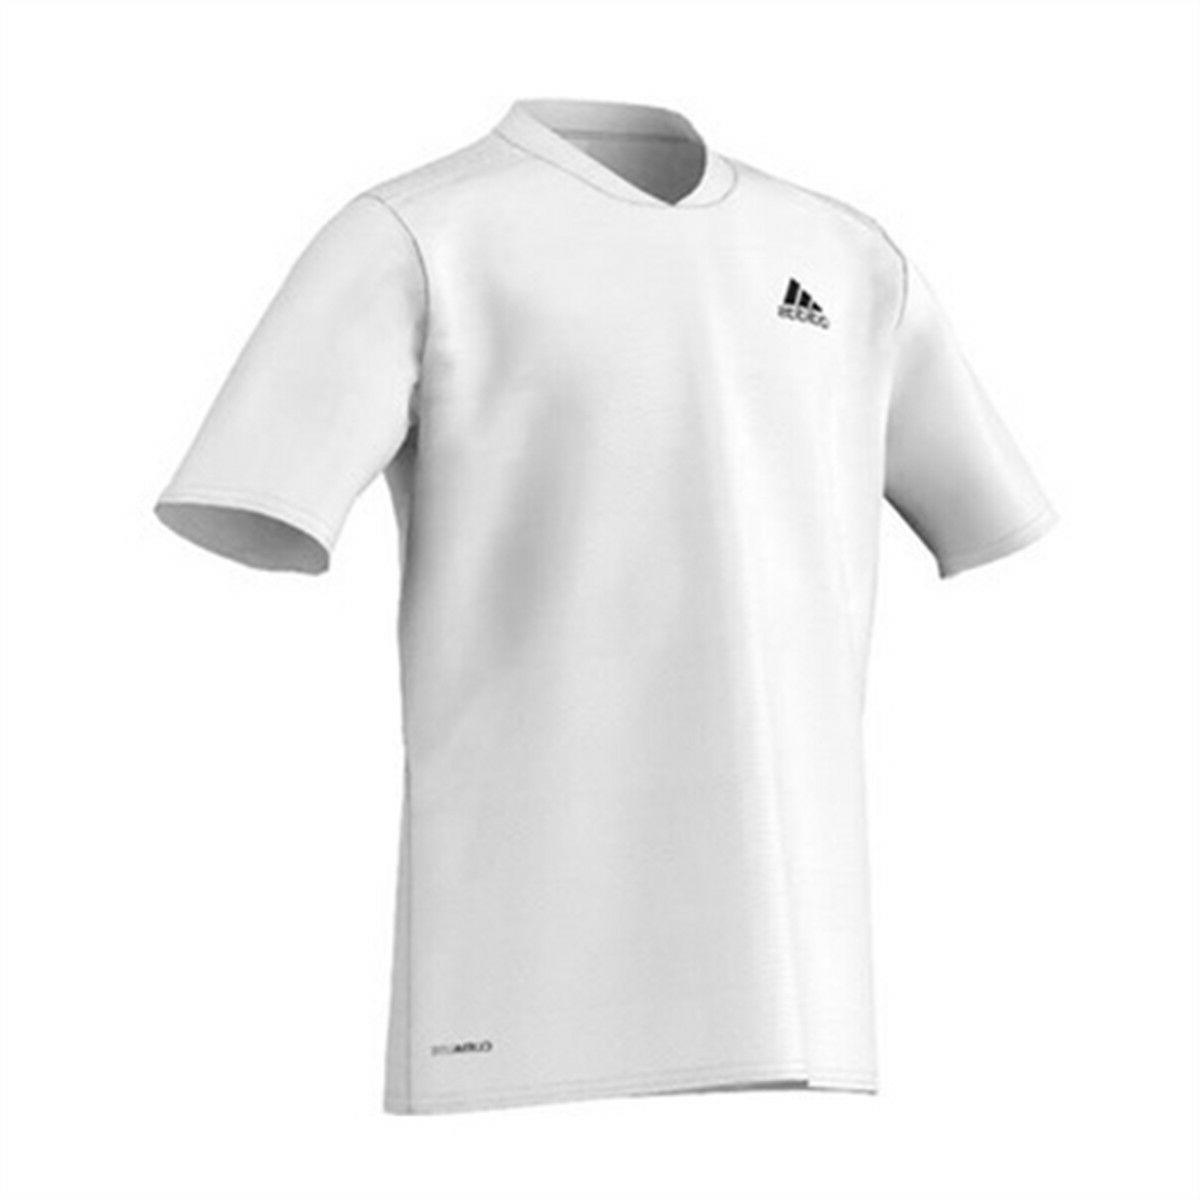 kids youth tabe 11 jersey white short